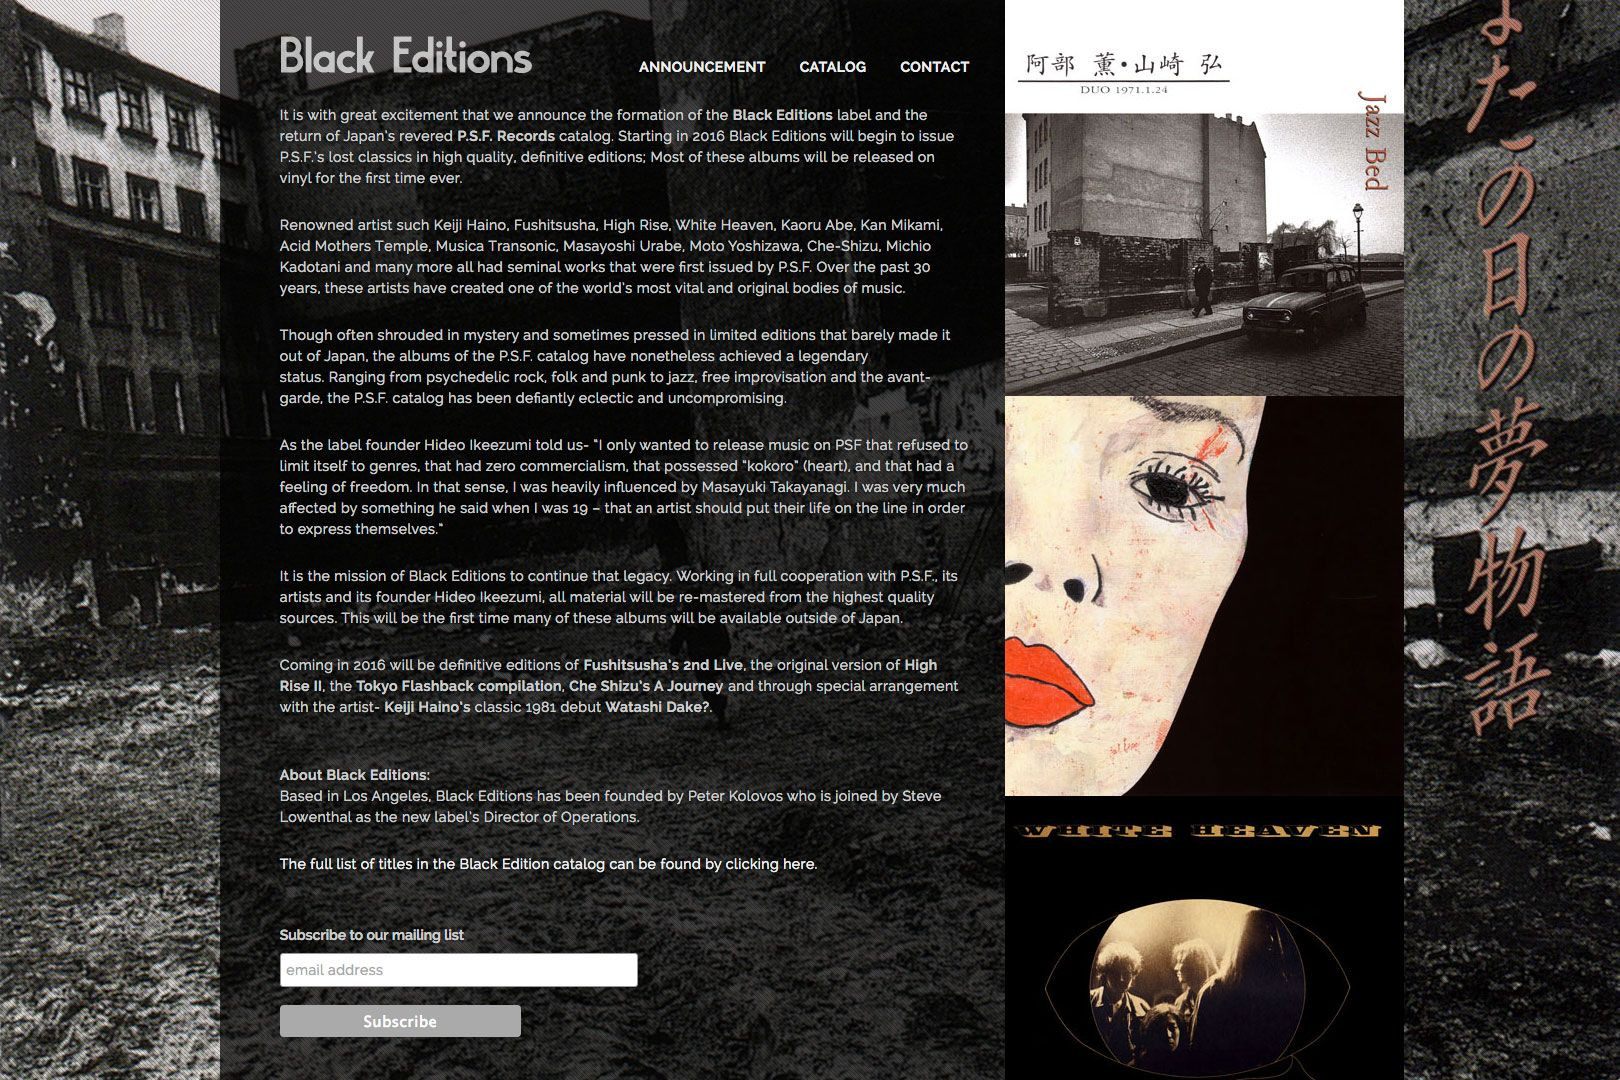 The Black Editions website updates